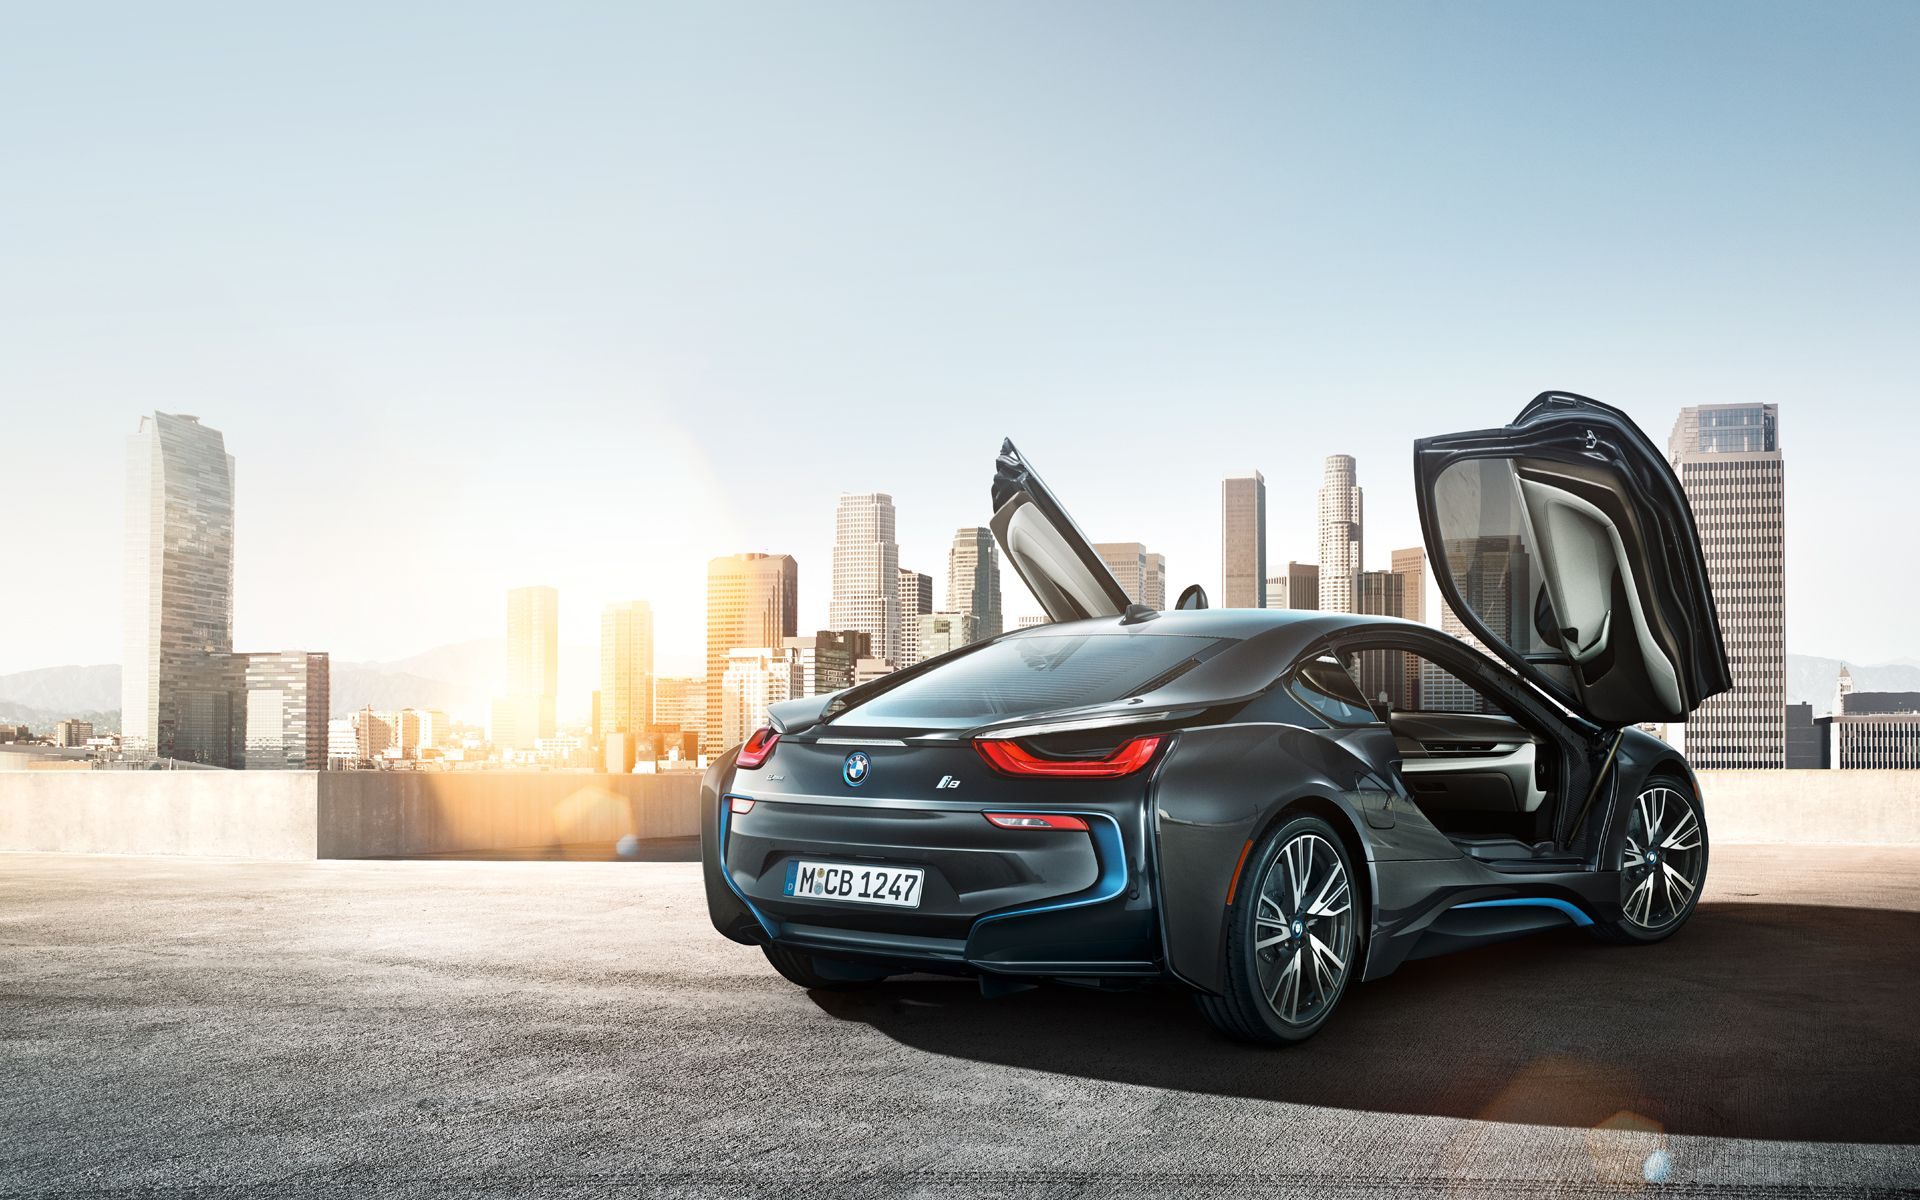 With Scissor Doors That Glide Upward When Opened And Blend Perfectly When Closed The Sporty Character Of The Bmw I8 Is Immediately Recognizable Bmw